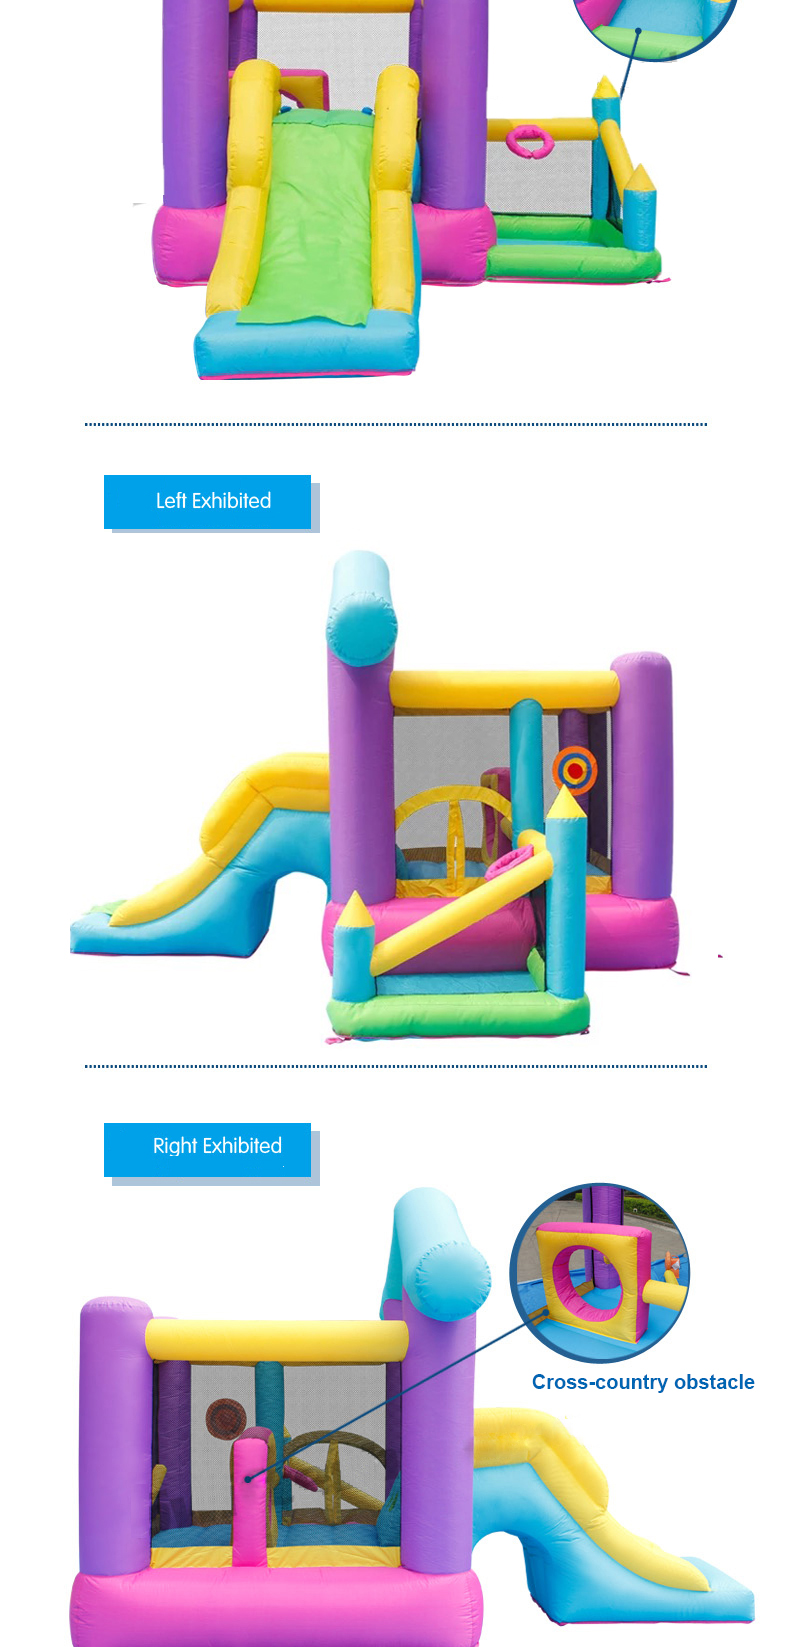 HTB16OnGPpXXXXXbXpXXq6xXFXXXo - Mr. Fun Inflatable Bouncy House Big Slide For Kids With Ball Pool, Target, & Obstacle Course With Blower